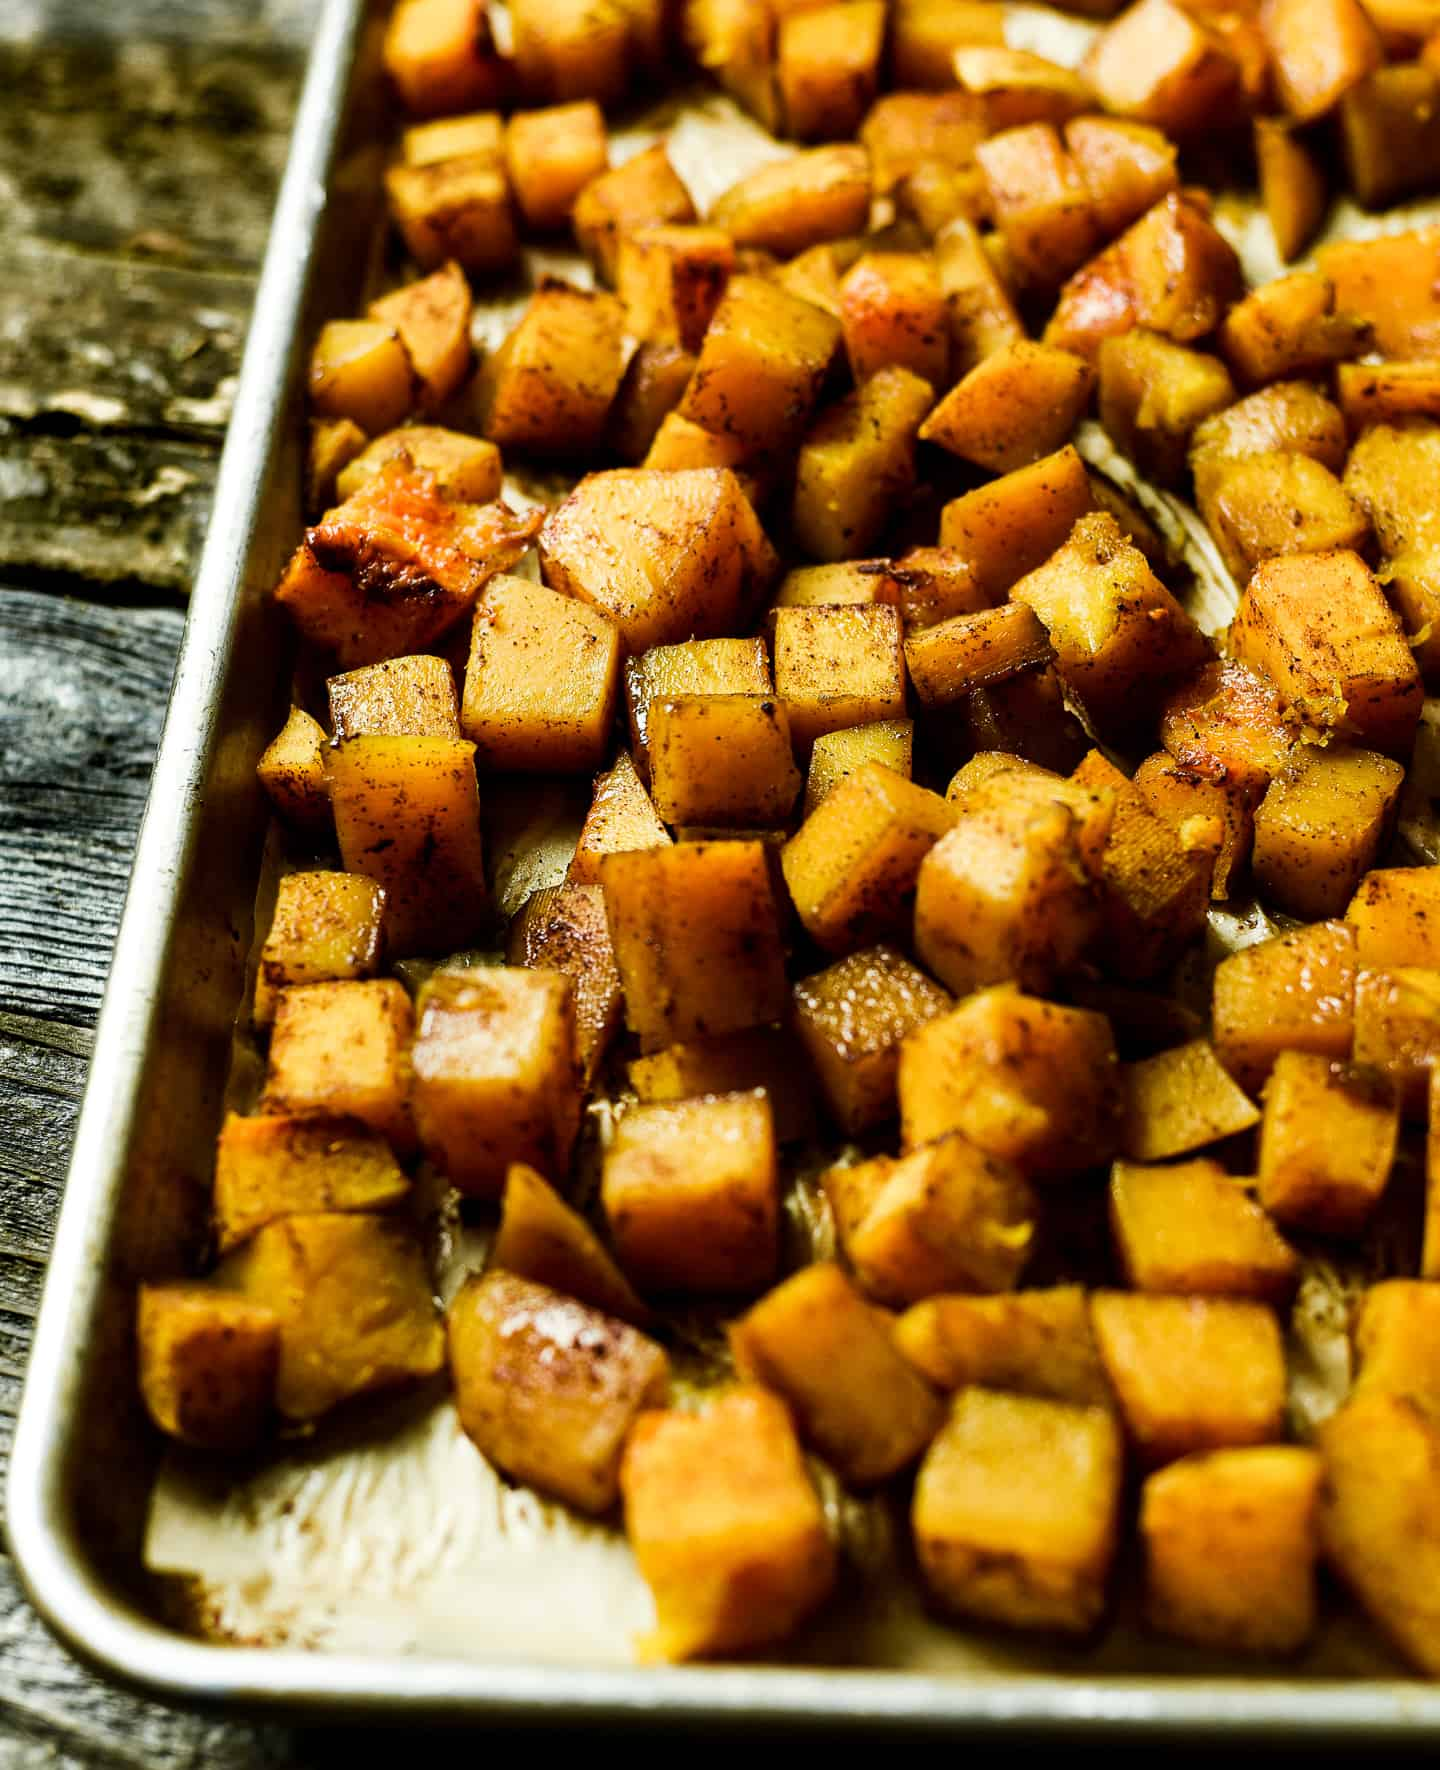 Roasted squash on baking sheet.